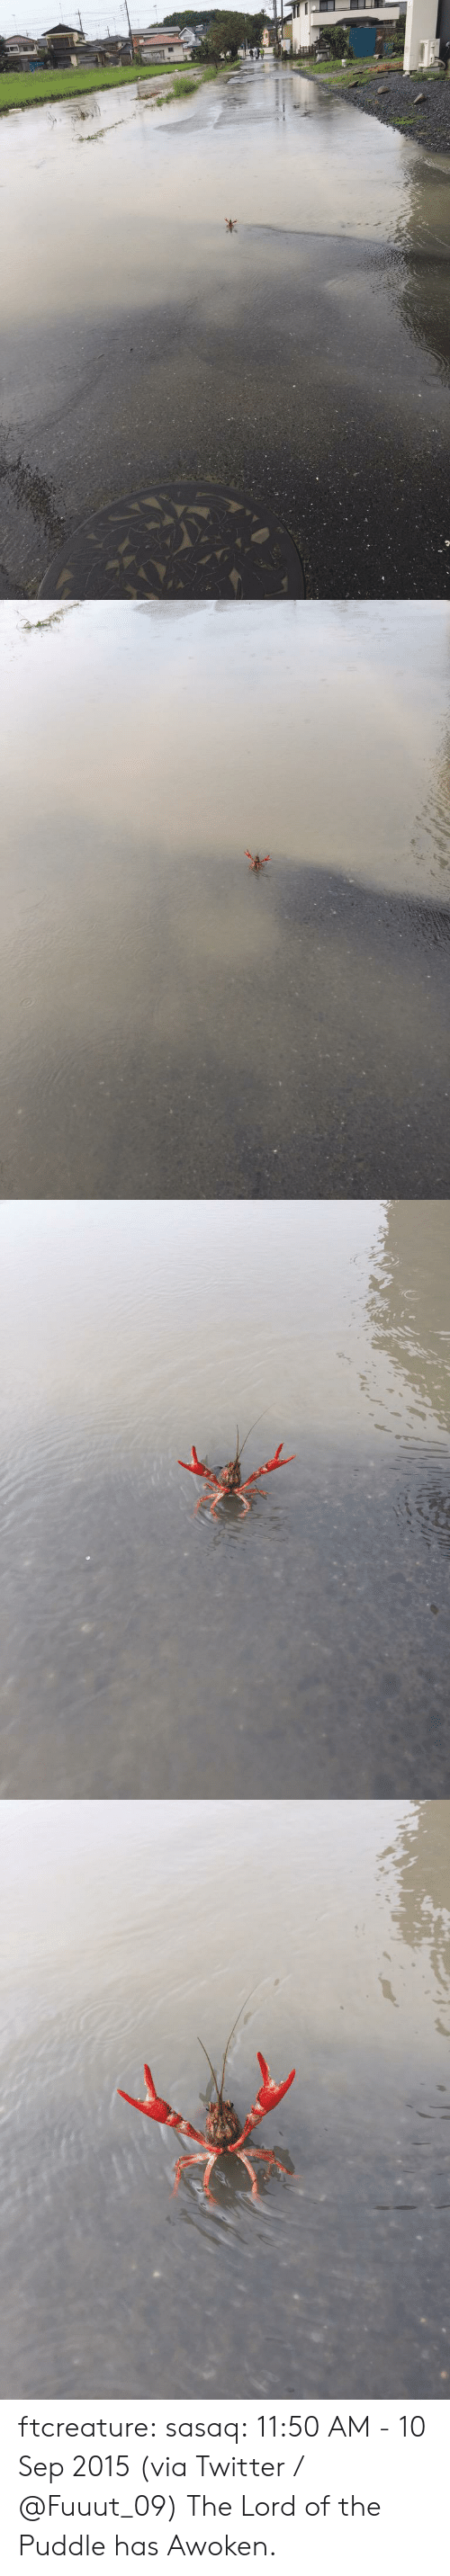 10 Sep: ftcreature:  sasaq:  11:50 AM - 10 Sep 2015 (via Twitter / ふ み な @Fuuut_09)    The Lord of the Puddle has Awoken.